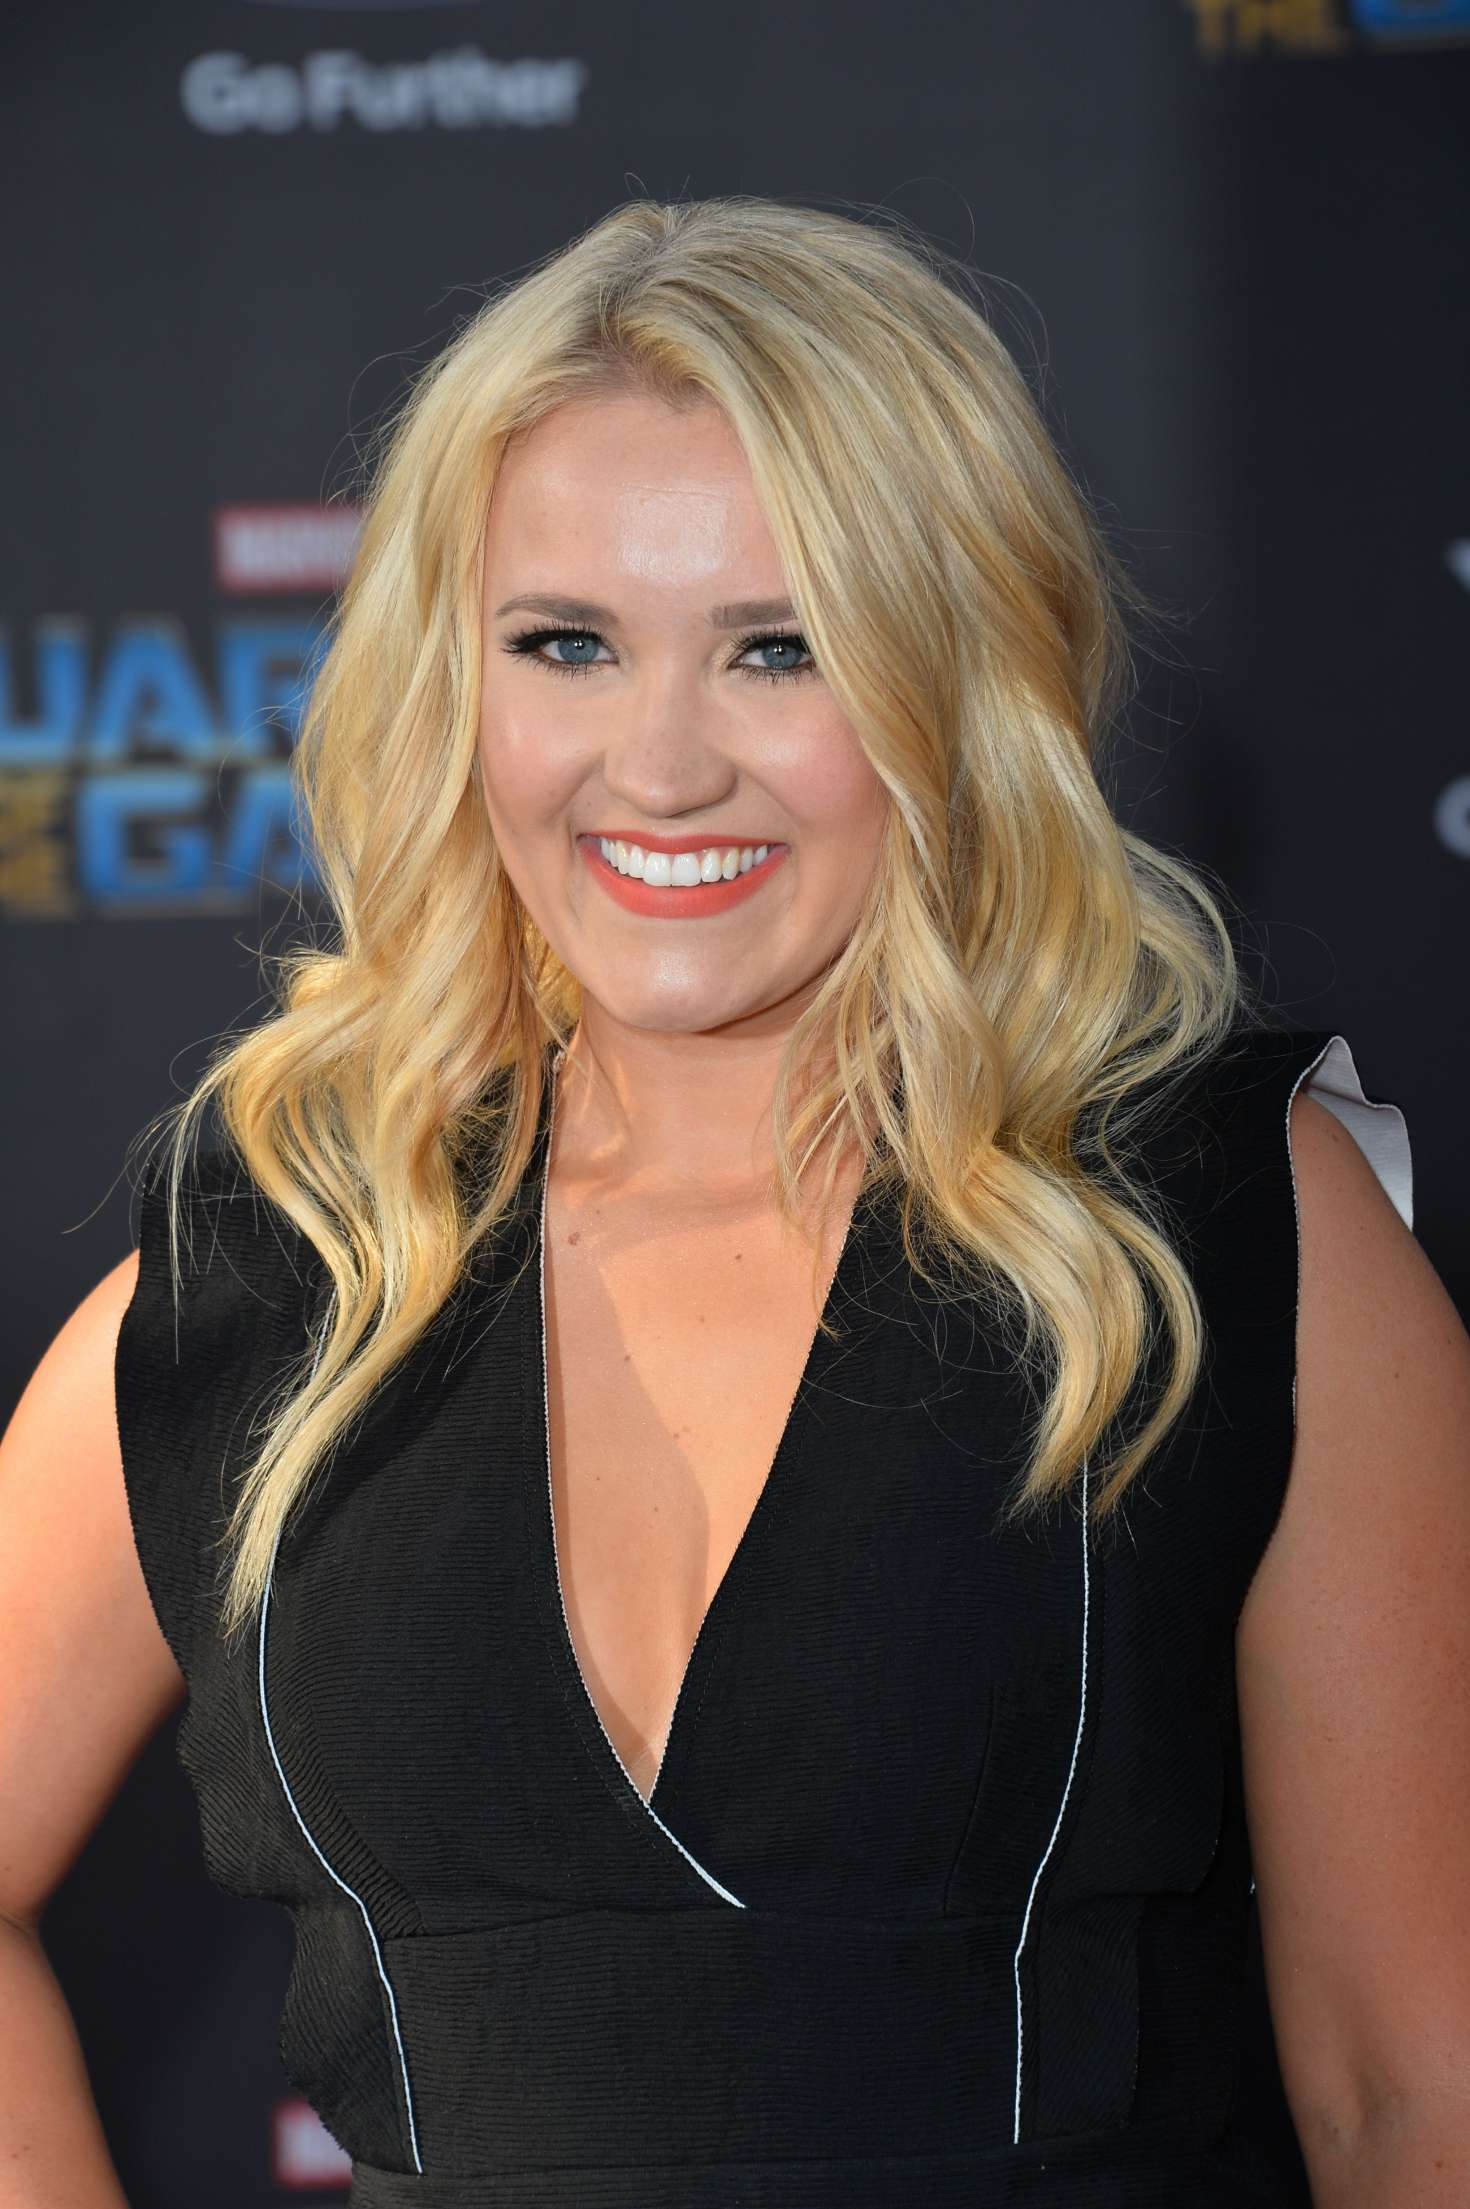 Pics Emily Osment nudes (24 foto and video), Tits, Is a cute, Feet, panties 2019